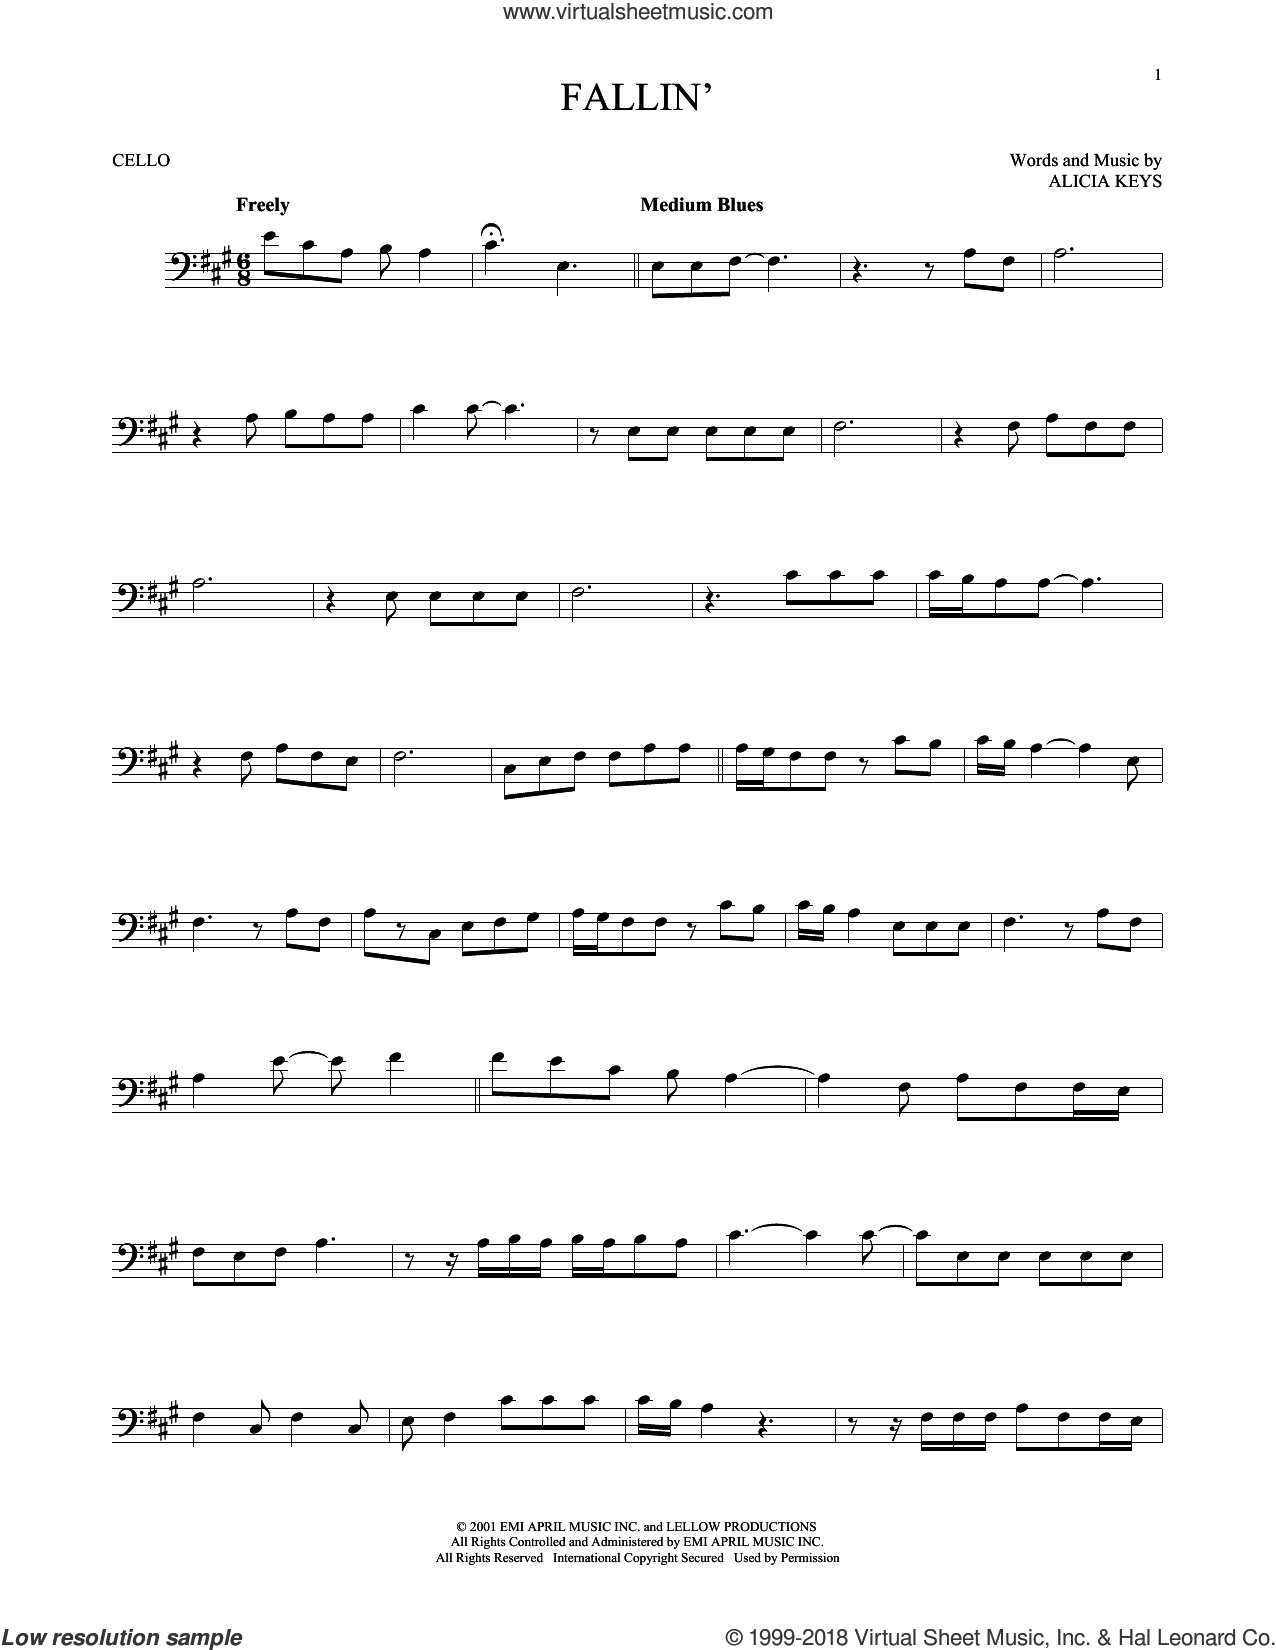 Fallin' sheet music for cello solo by Alicia Keys, intermediate skill level